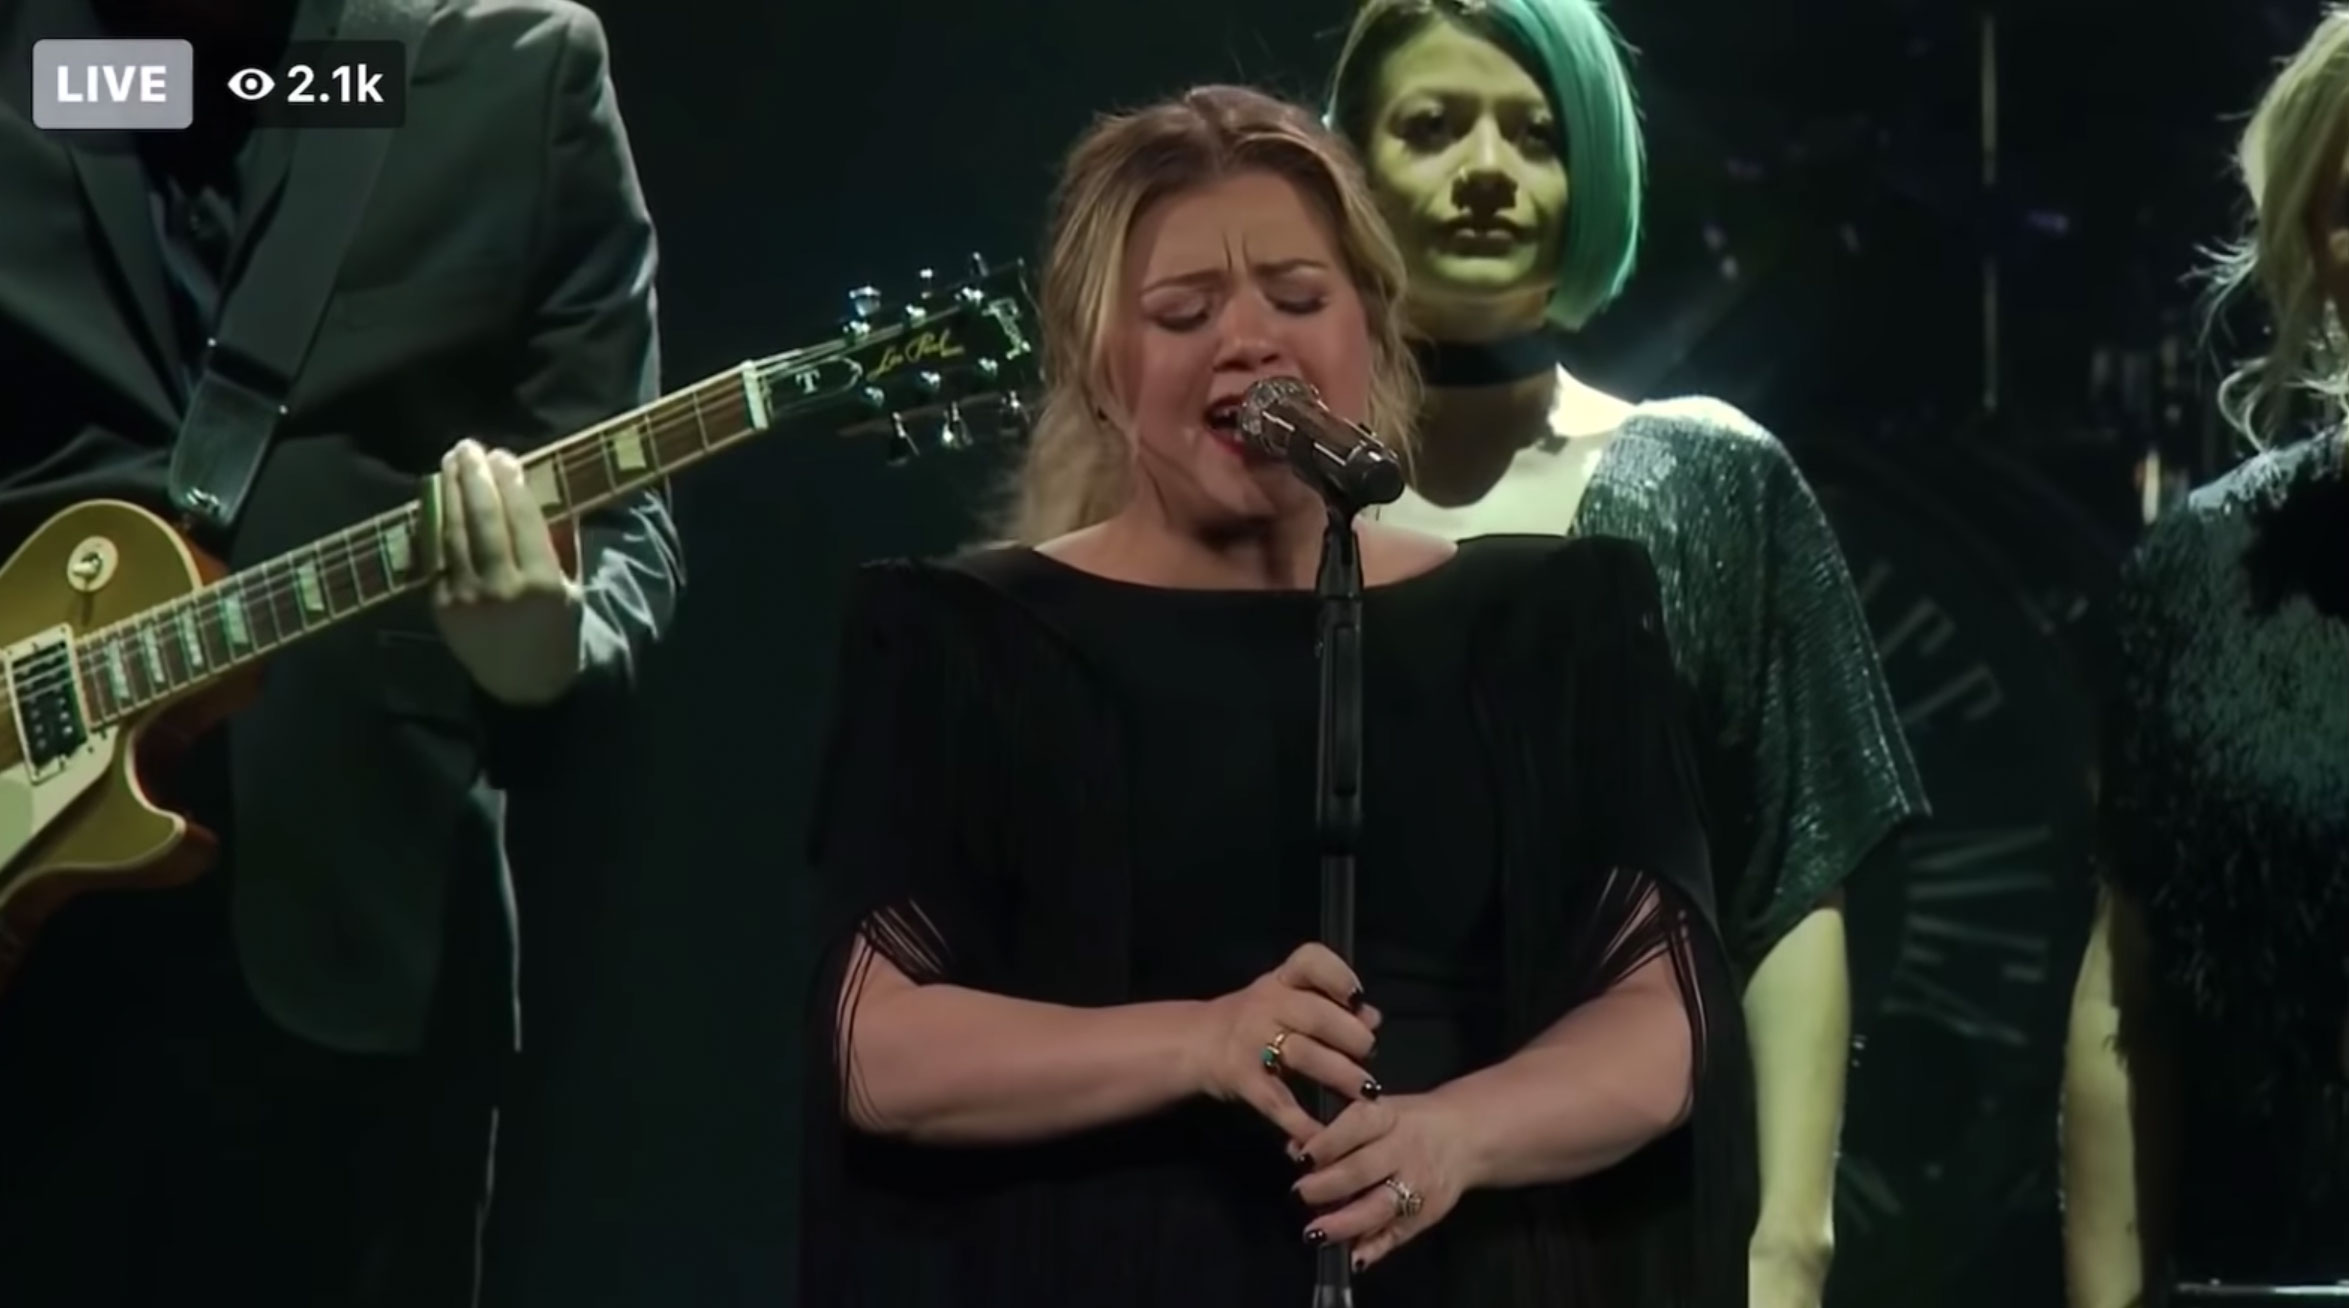 Watch: Kelly Clarkson Soars With her Stellar Rendition of Lady Gaga's 'Shallow'